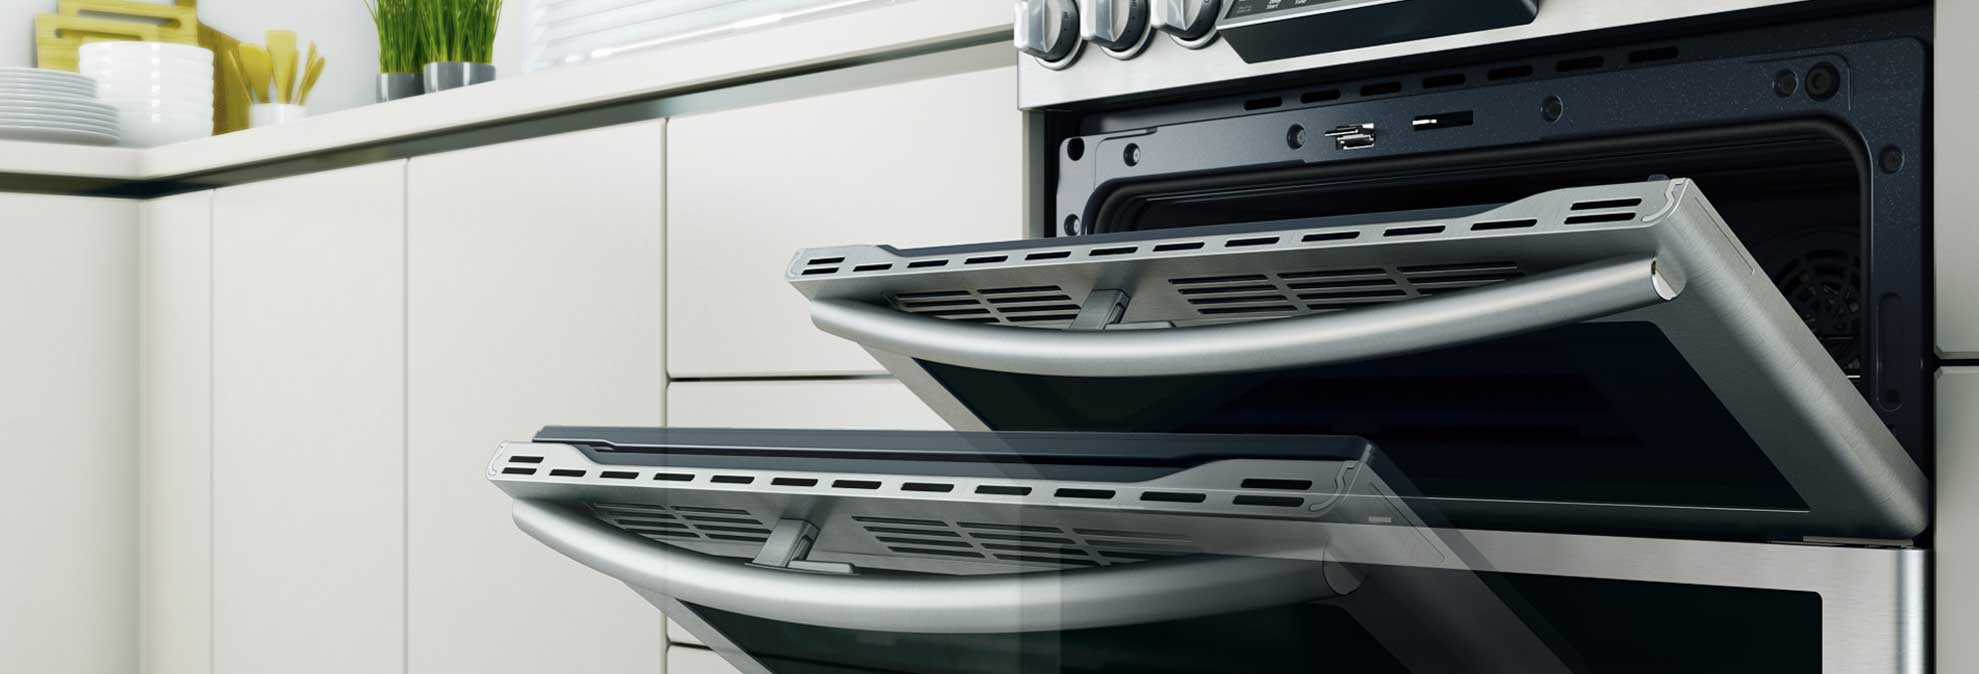 5 Things To Double Check When Buying A Double Oven Consumer Reports